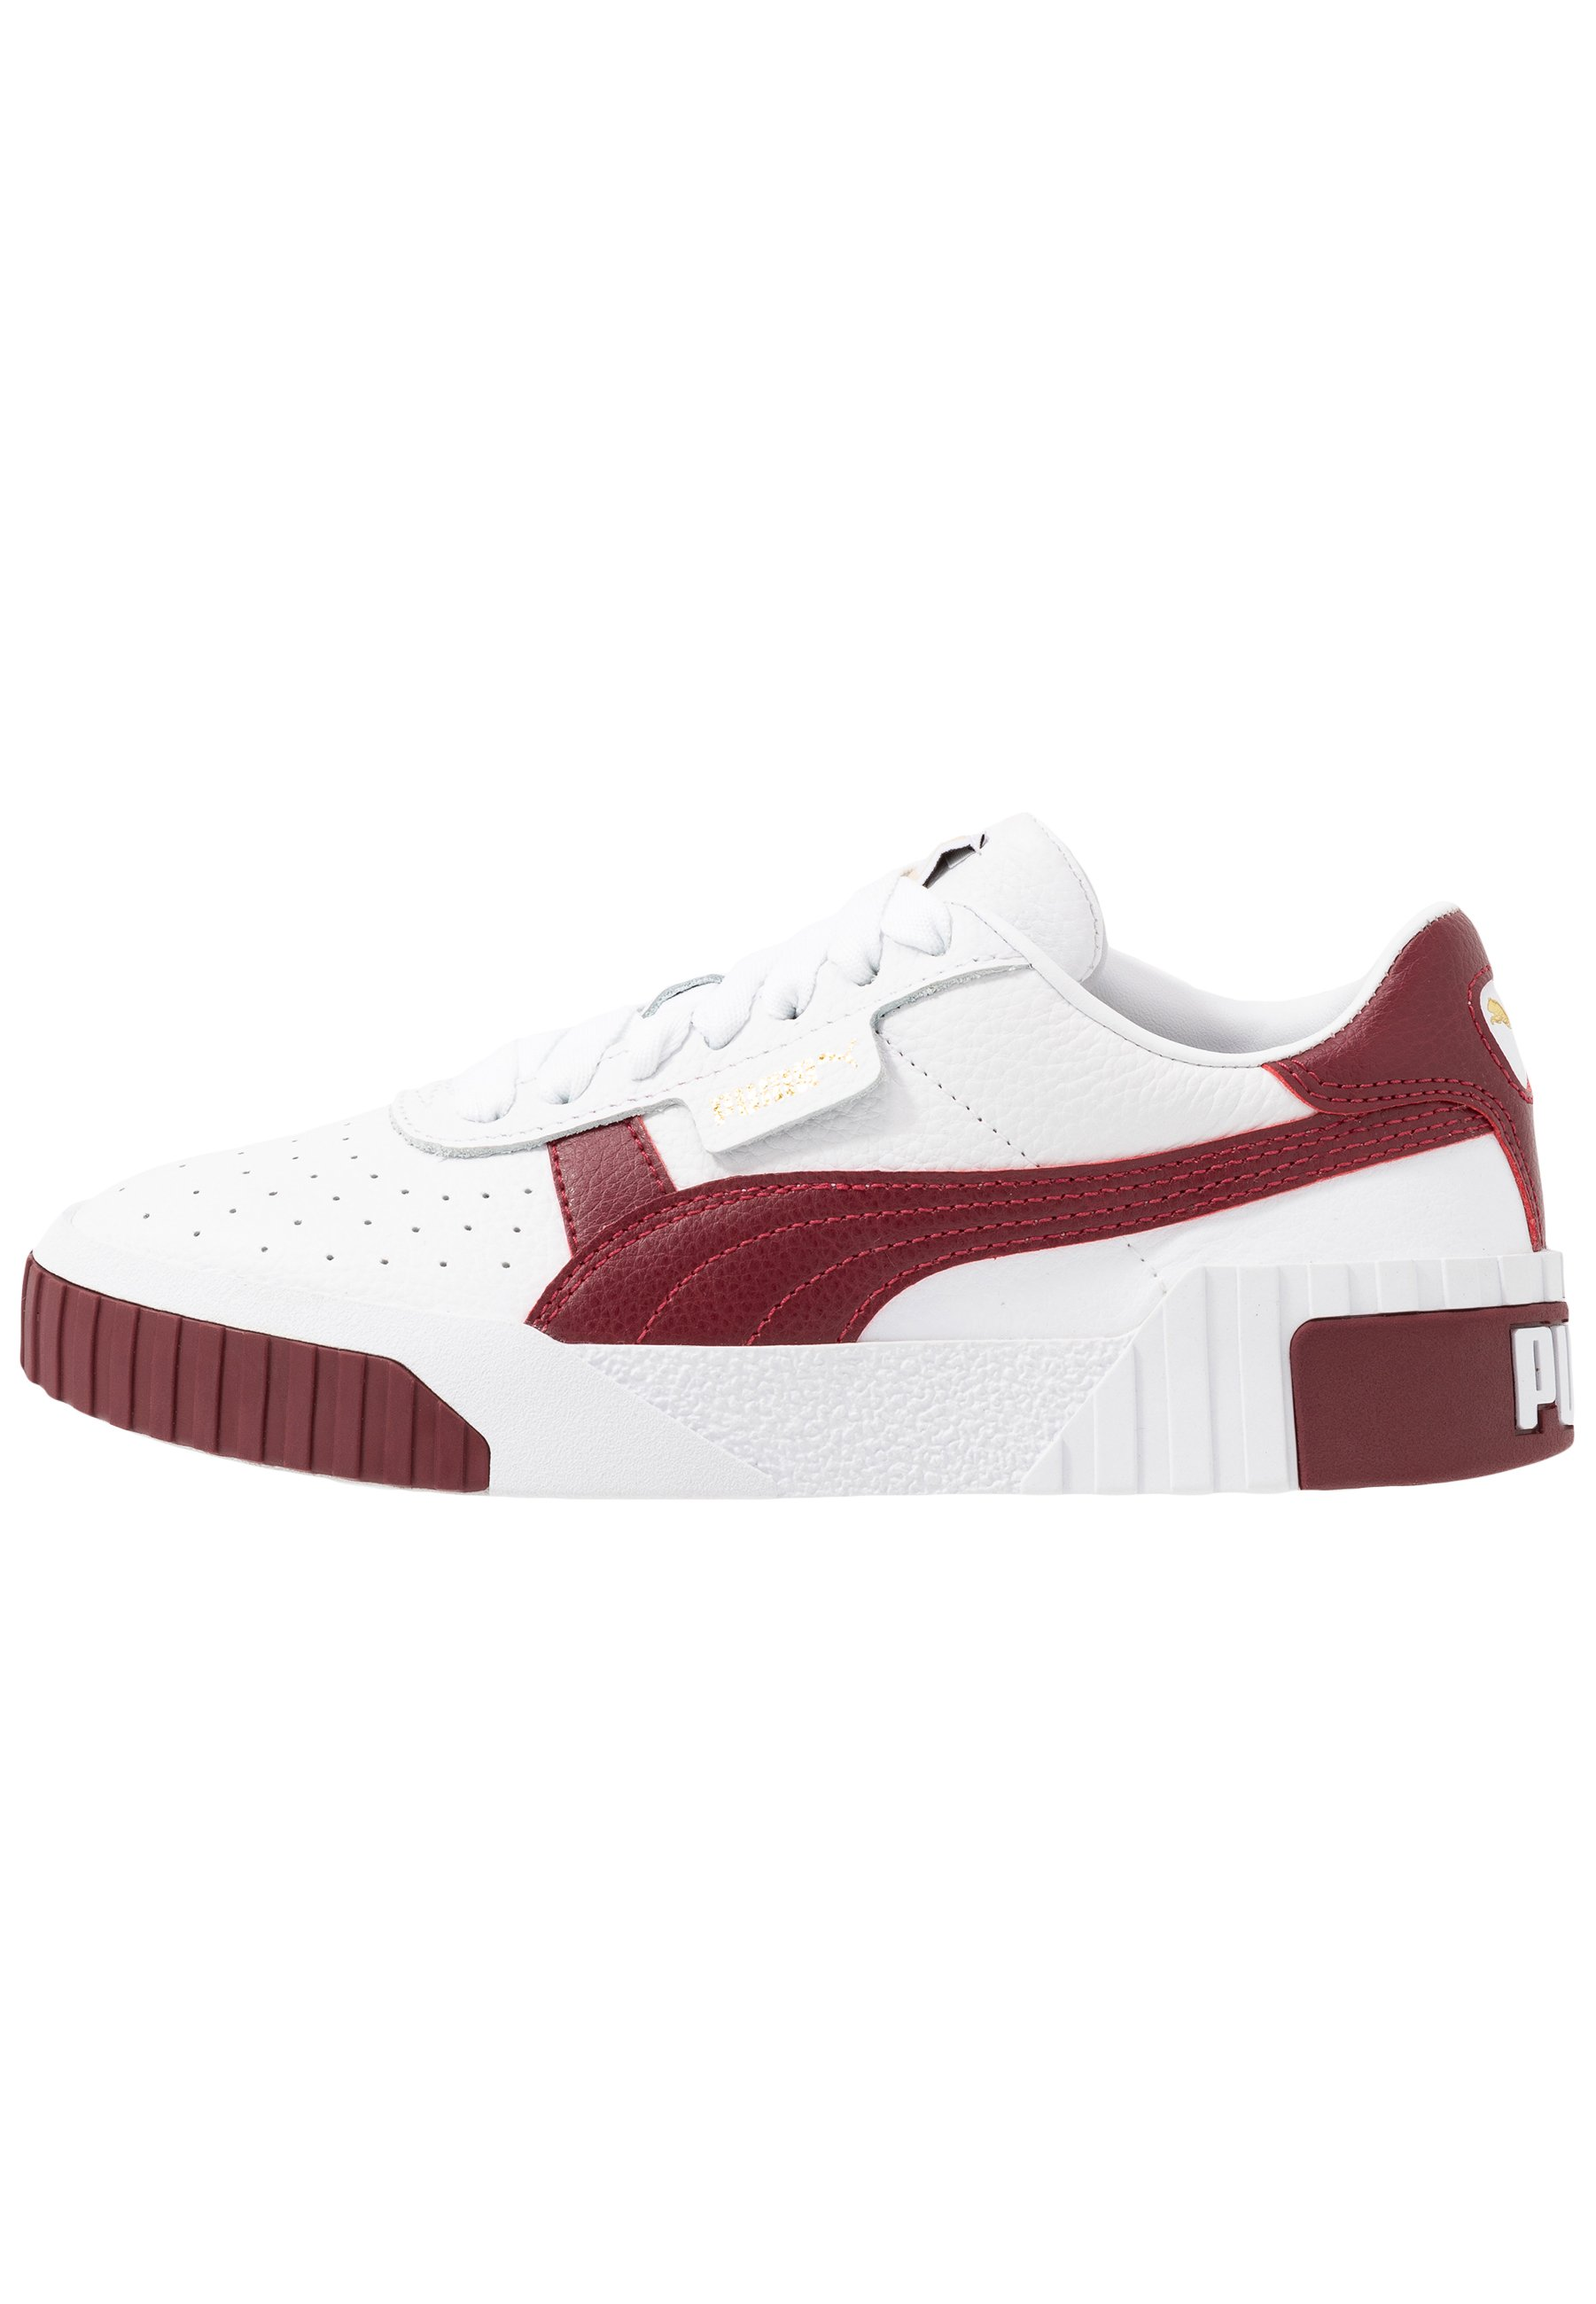 Puma Cali - Sneakers White/burnt Russet